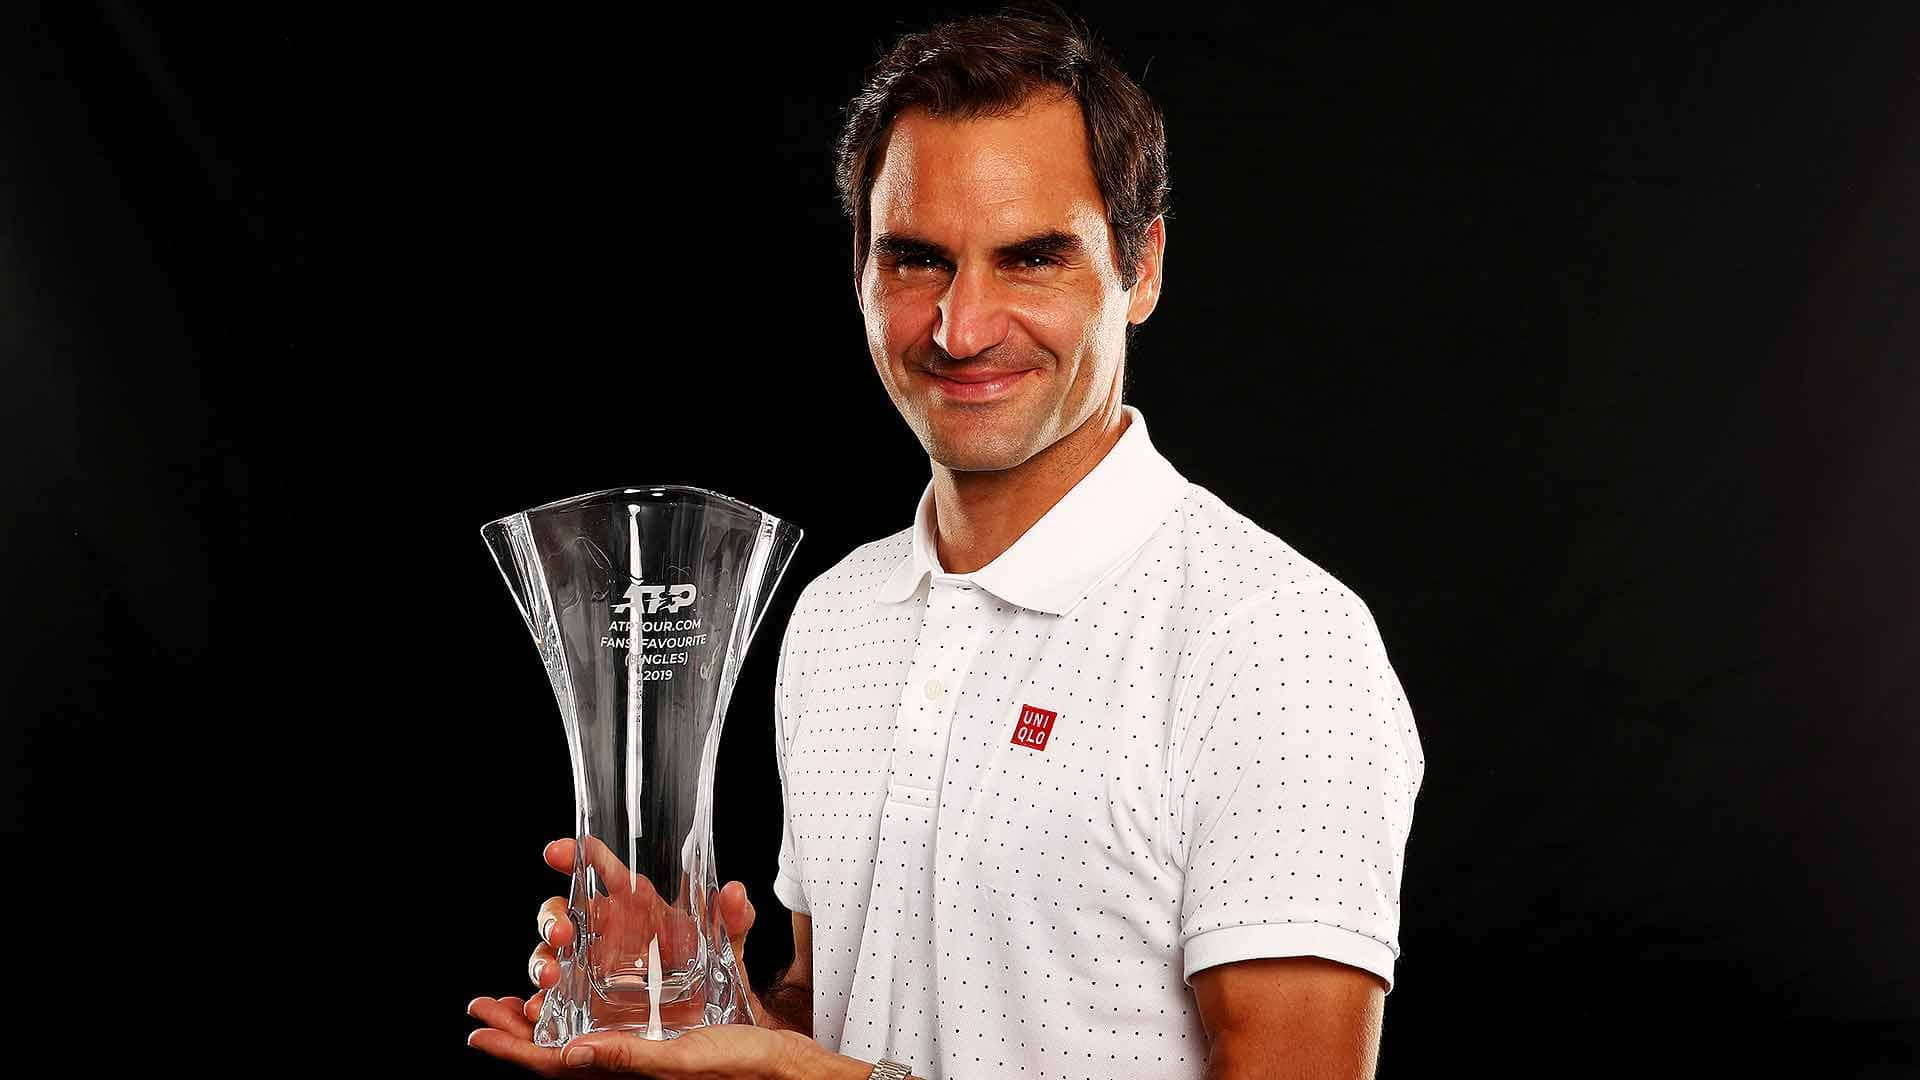 Roger Federer receives the ATPTour.com Fans' Favourite Award for the 17th consecutive year.